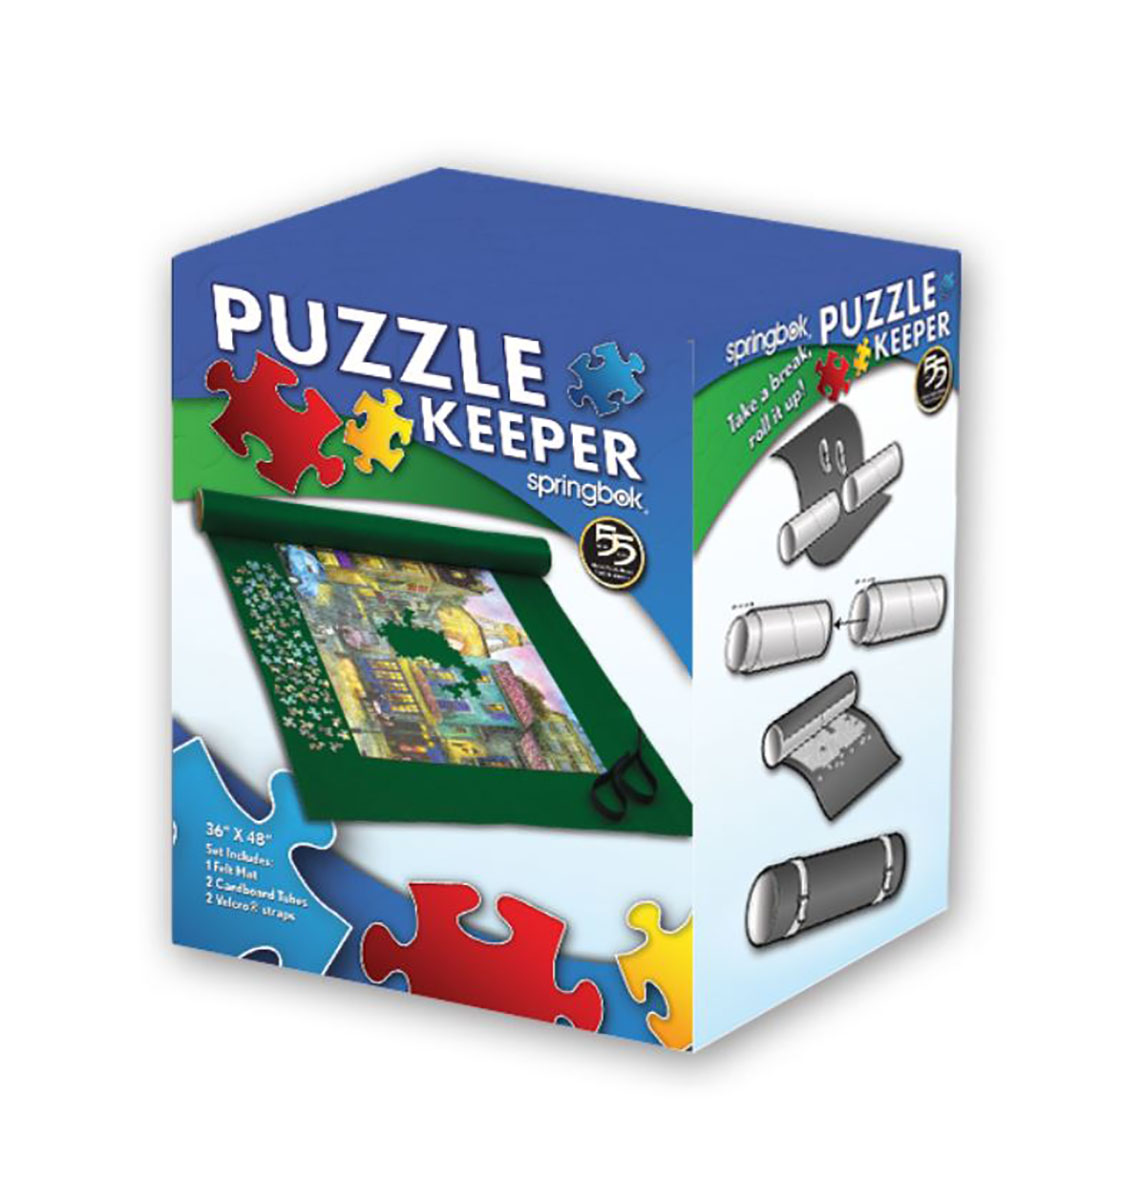 Puzzle Keeper - Jumbo (Up to 2,000 Pieces) 2000 and above